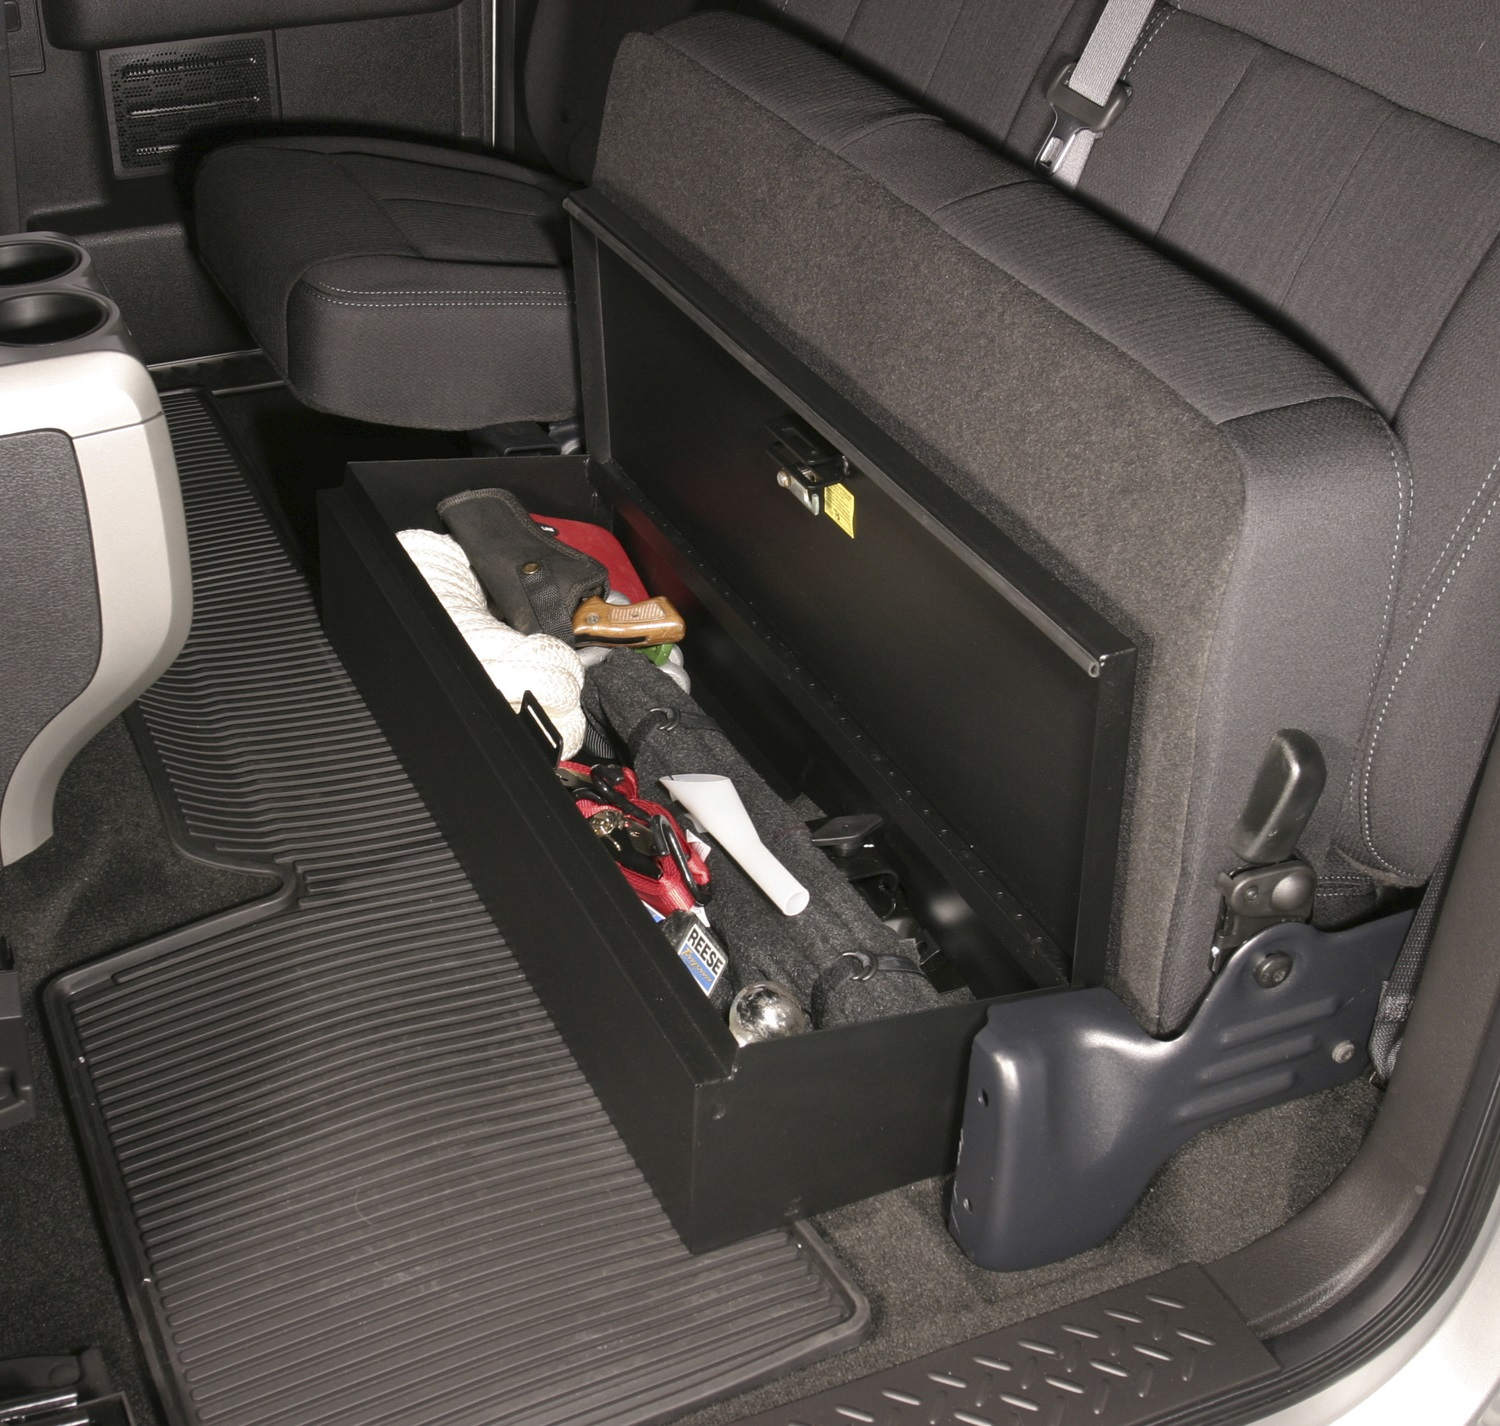 new tuffy security underseat lockbox 09 13 f 150 pickup interior storage ford tb ebay. Black Bedroom Furniture Sets. Home Design Ideas